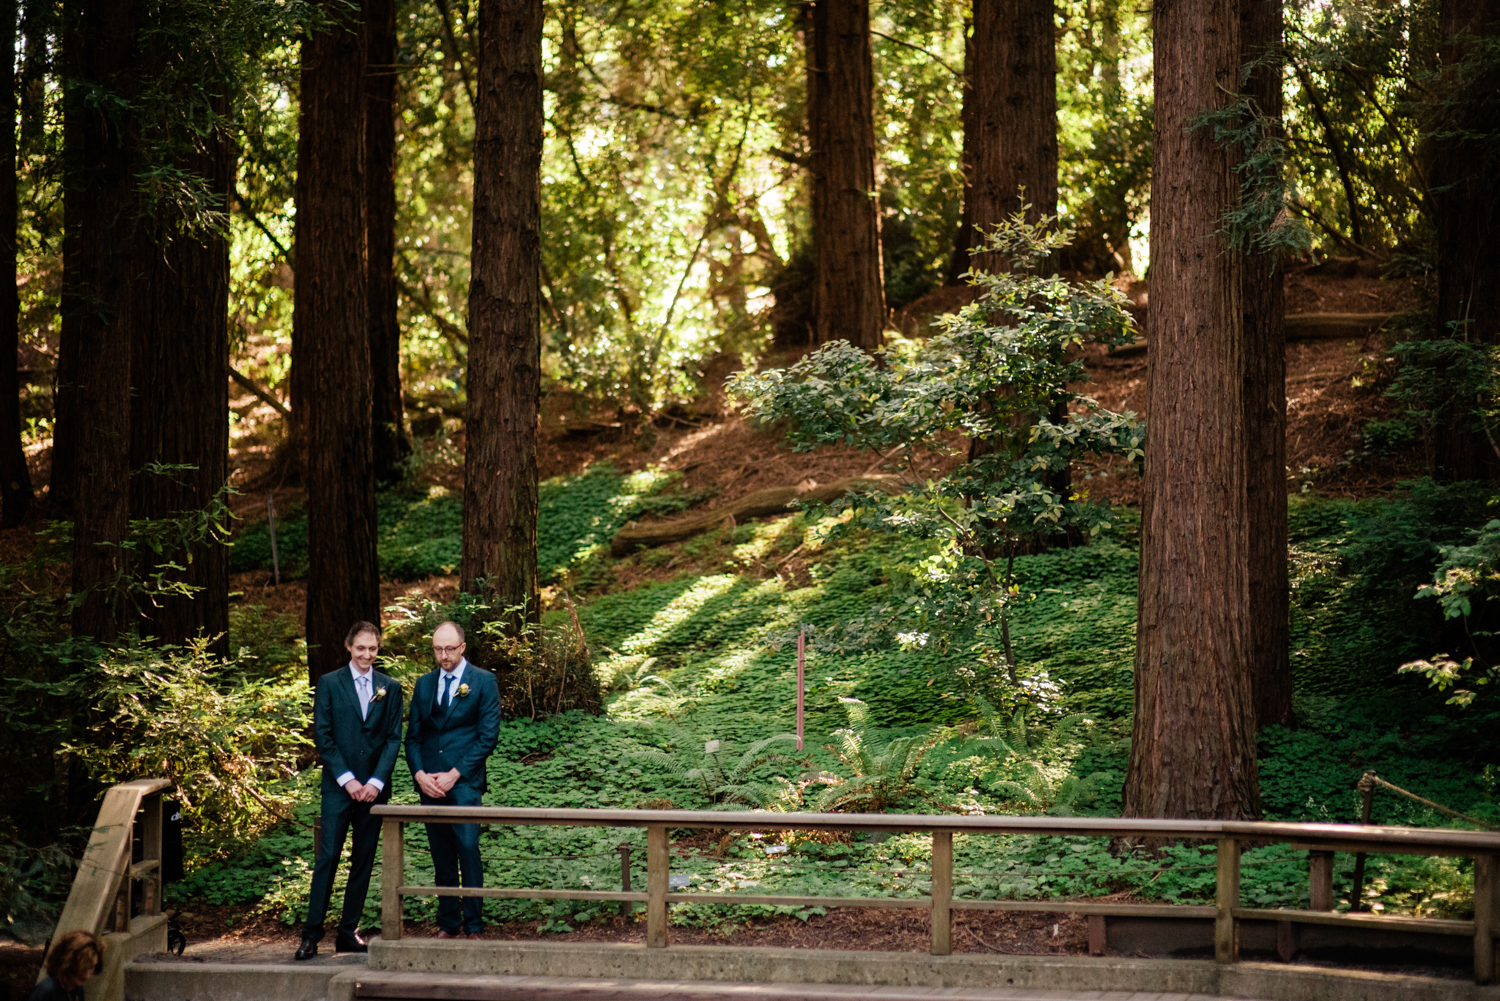 UC_Berkeley_Botanical_Garden_Wedding_ChristinaRichards_014.jpg